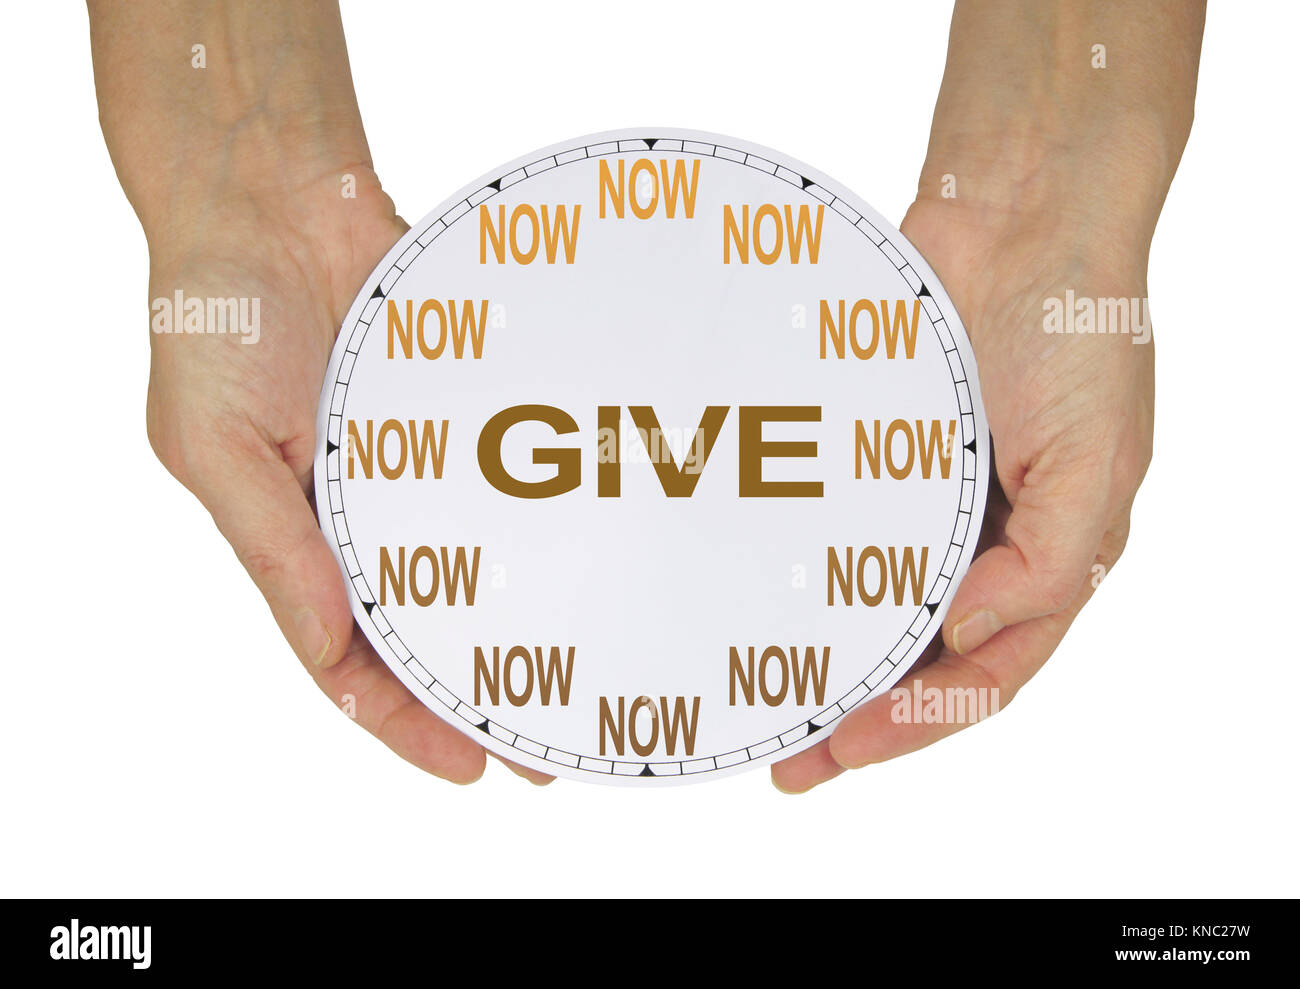 GIVE what you can NOW  - female hands holding a clock with no hands that has NOW in place of the numerals and GIVE - Stock Image